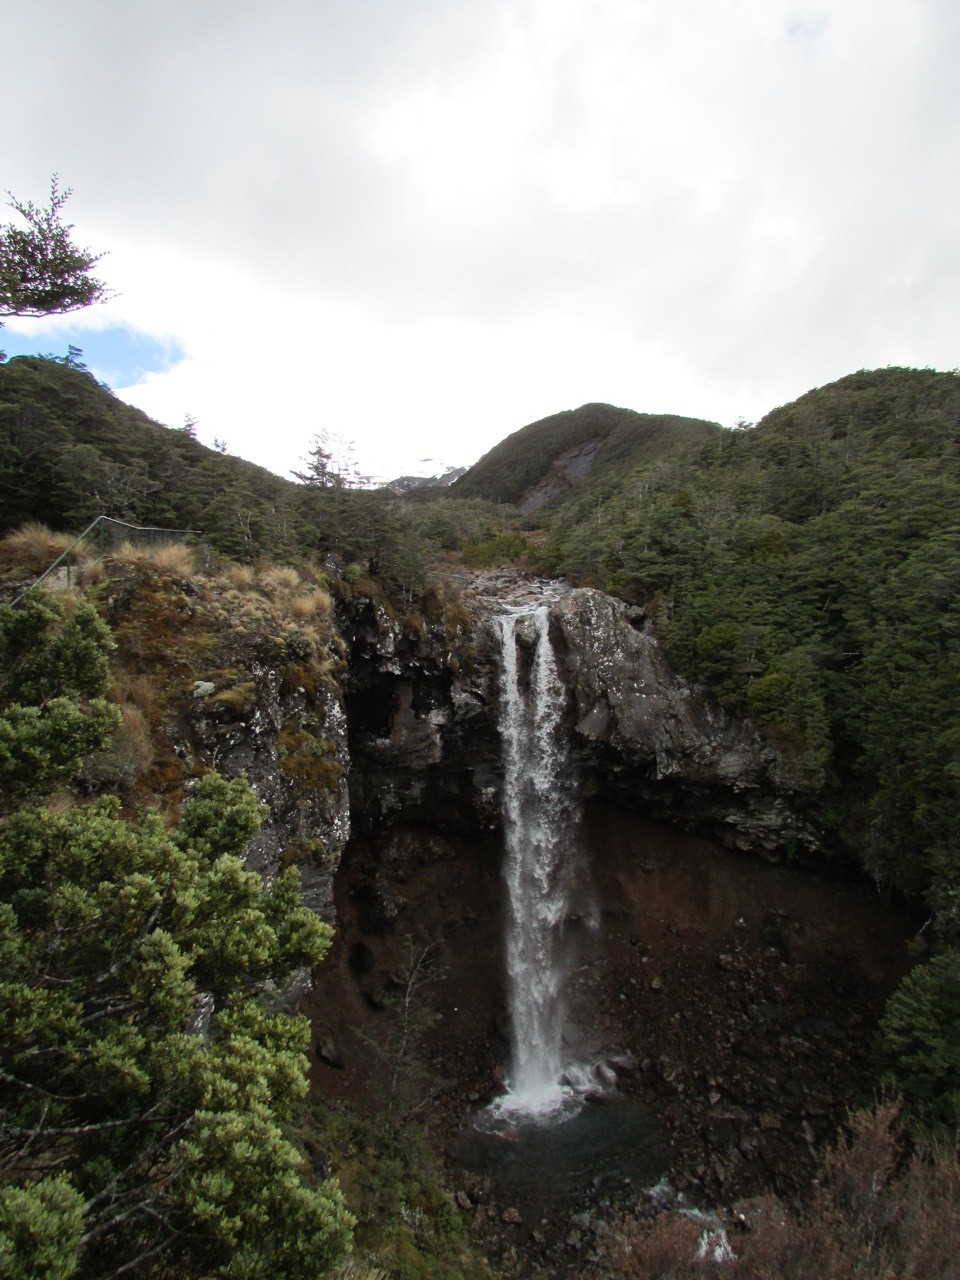 Mangawhero Falls - at the end of the track. The foothills of Mt Ruapehu, the water is snow melt so cold and clean, runs from here down to the plains through native mountain Beech rain forest.